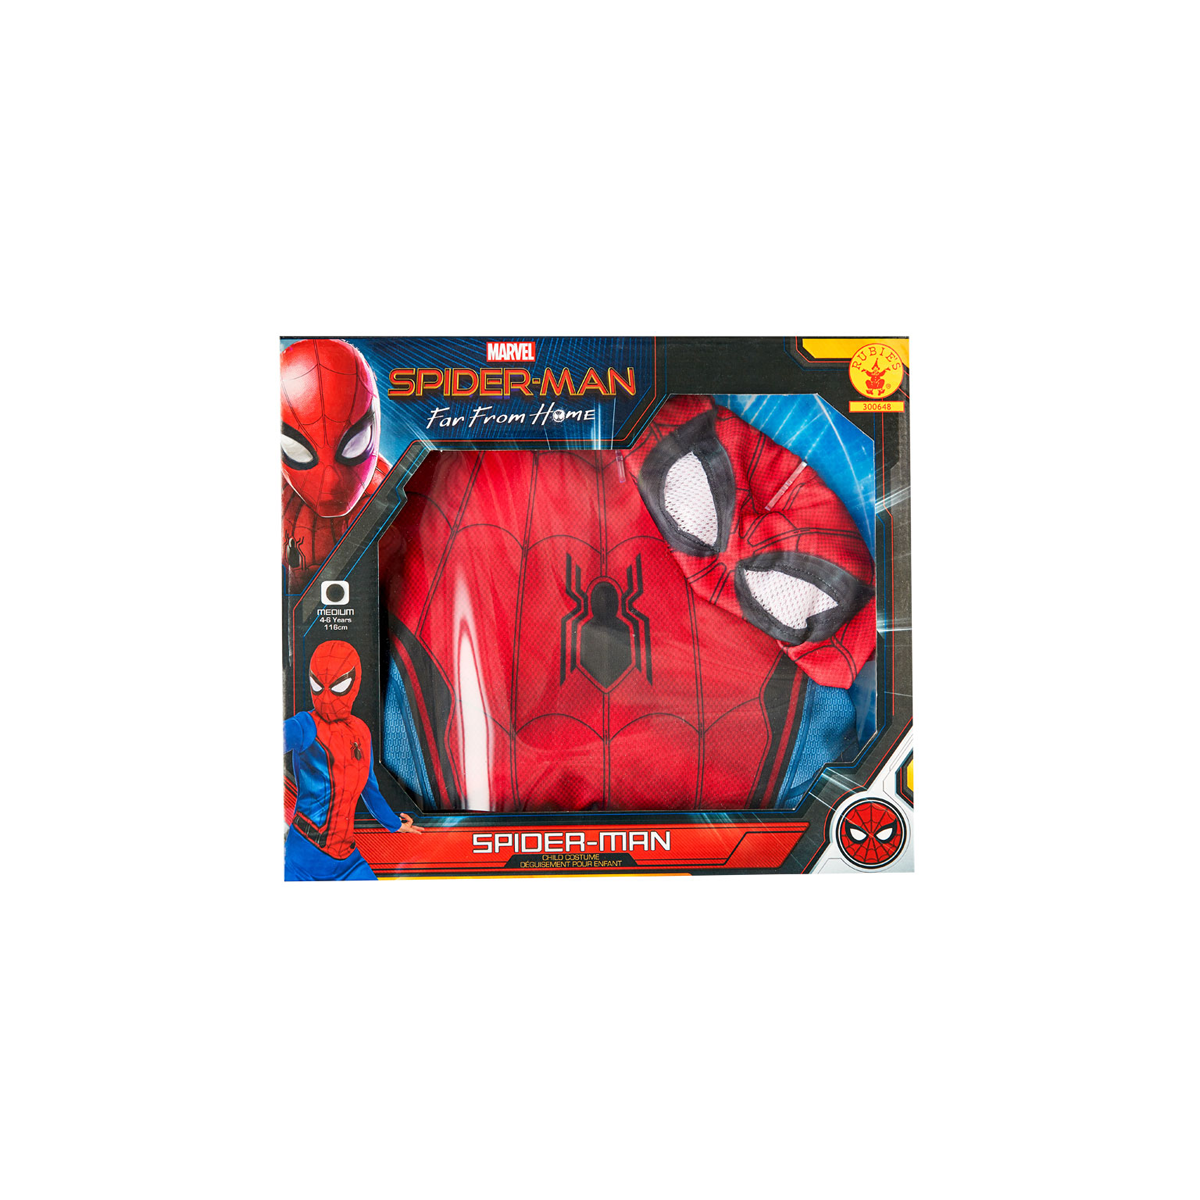 Marvel Spider-Man Far From Home Fancy Costume Box from Early Learning Center